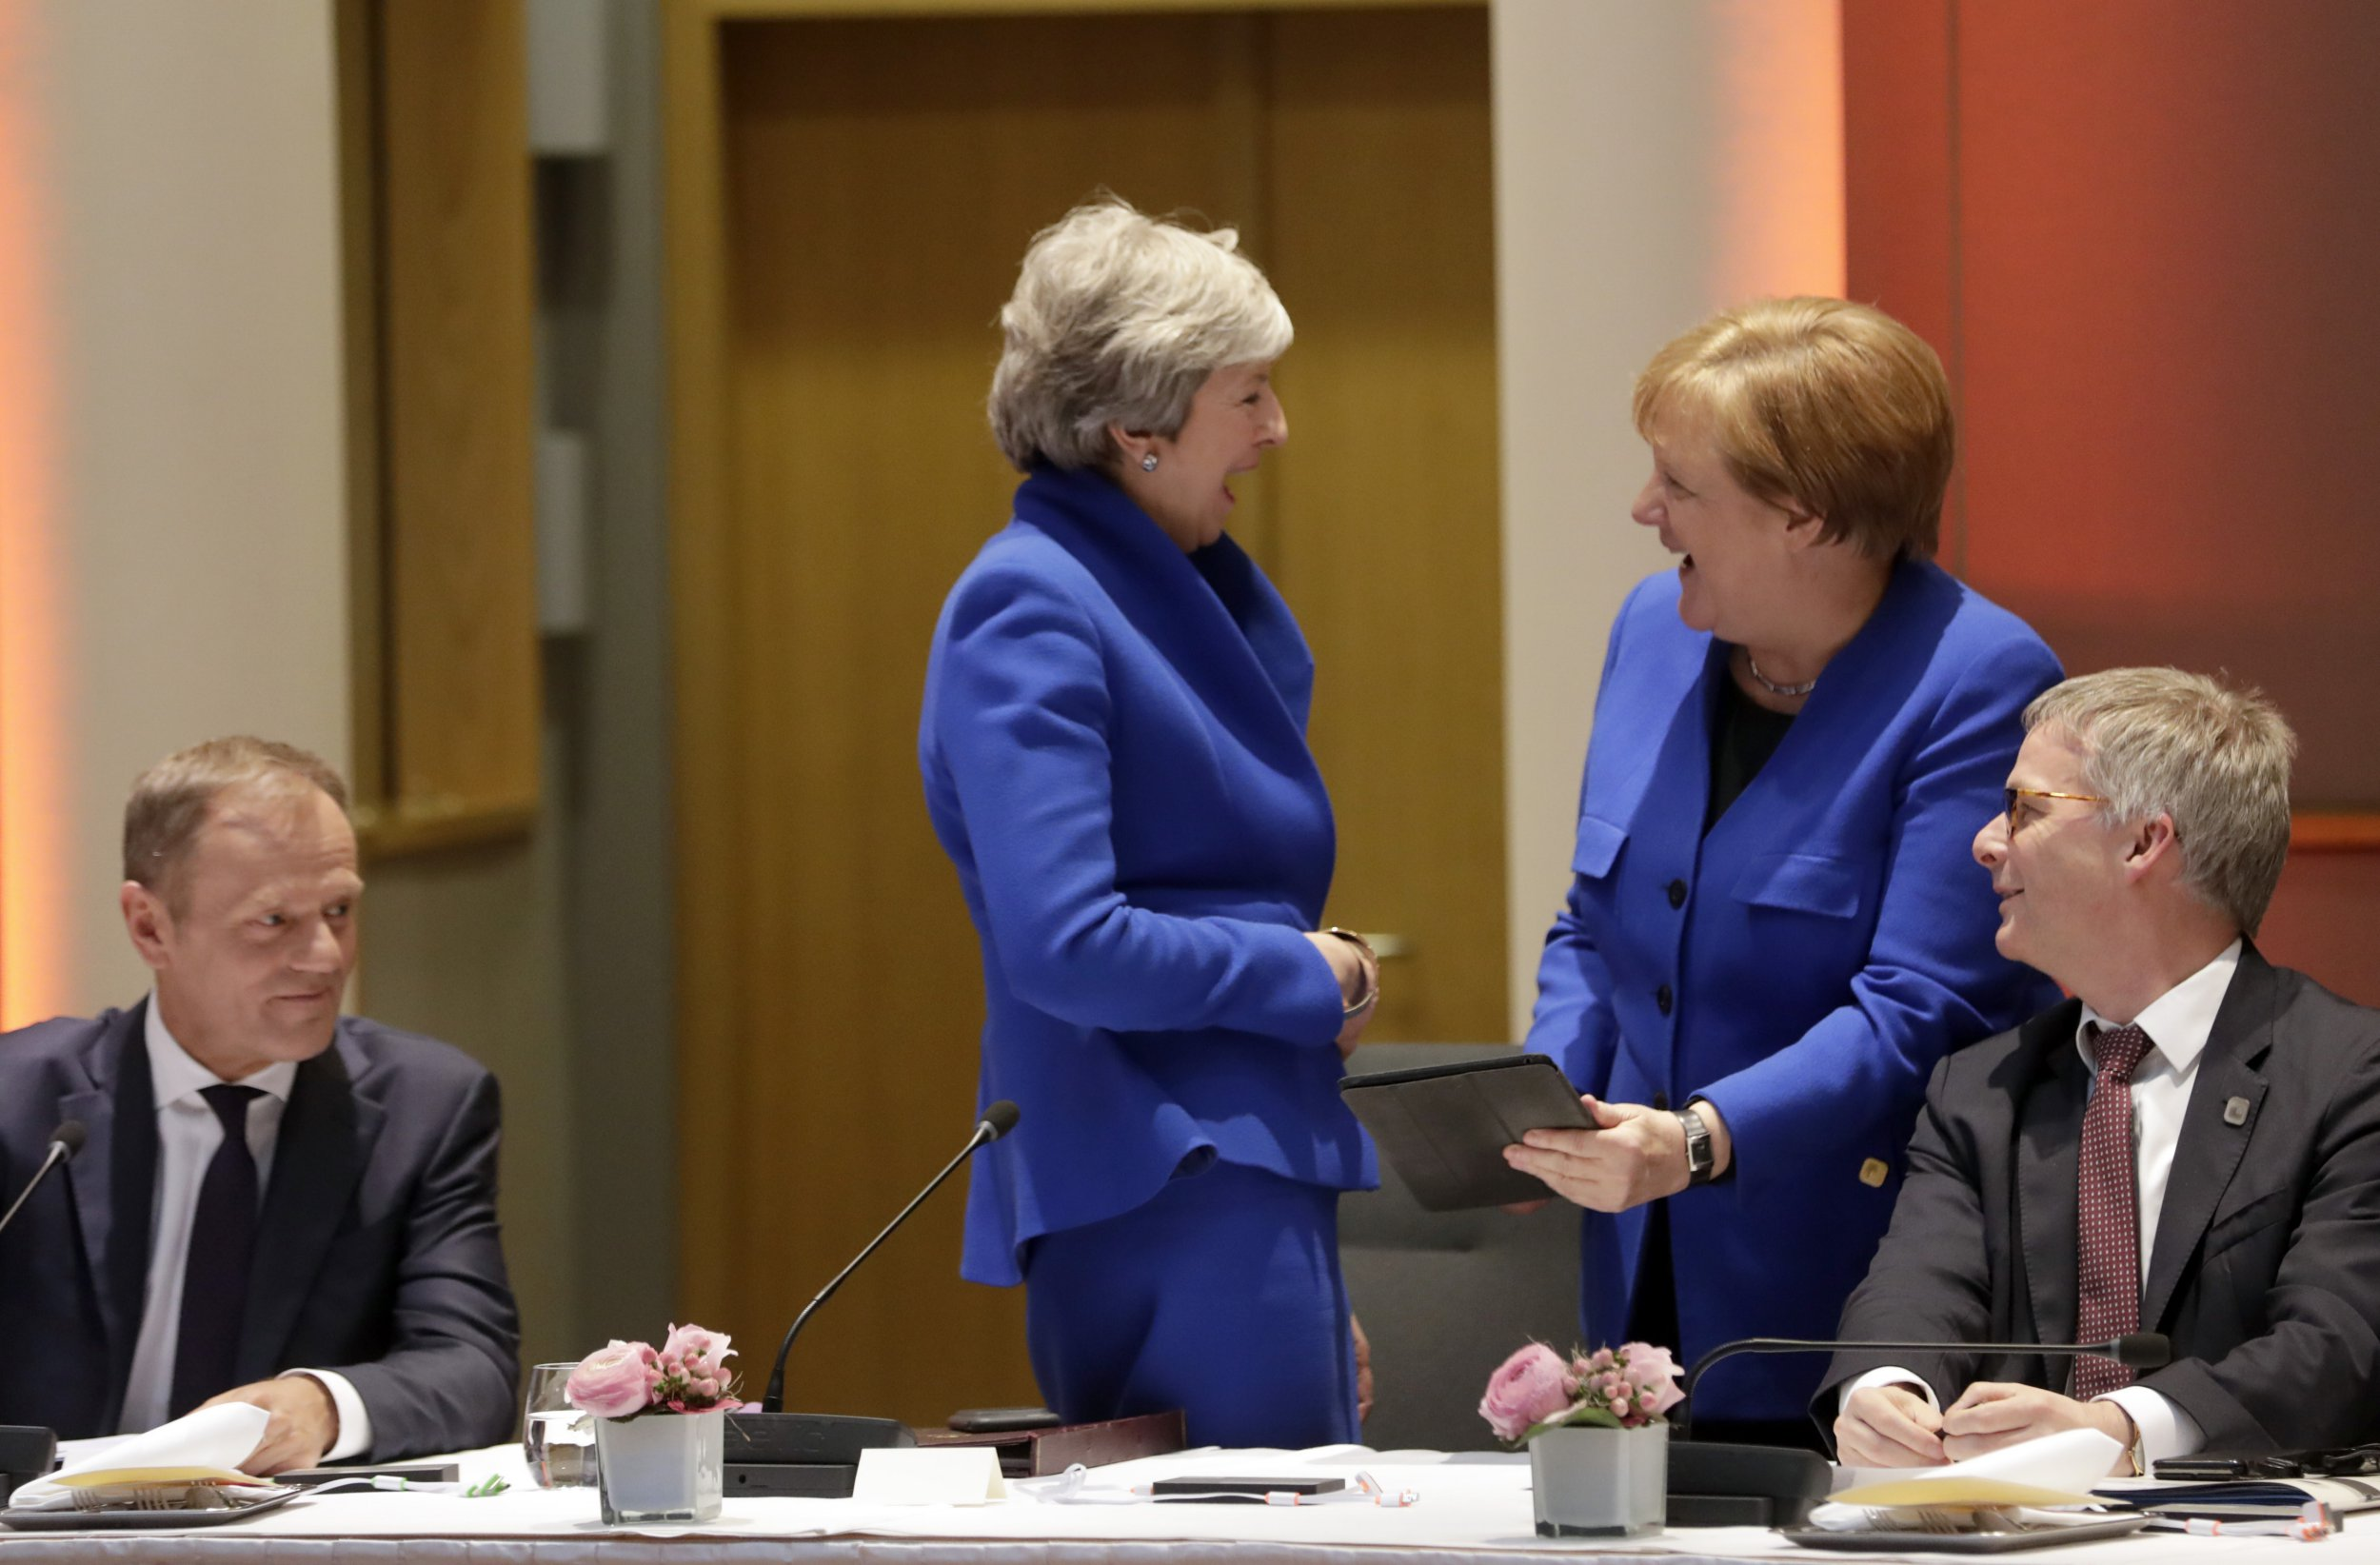 British Prime Minister Theresa May, left, speaks with German Chancellor Angela Merkel prior to a dinner during an EU summit in Brussels, Wednesday, April 10, 2019. European Union leaders met Wednesday in Brussels for an emergency summit to discuss a new Brexit extension. (Olivier Hoslet, Pool Photo via AP)